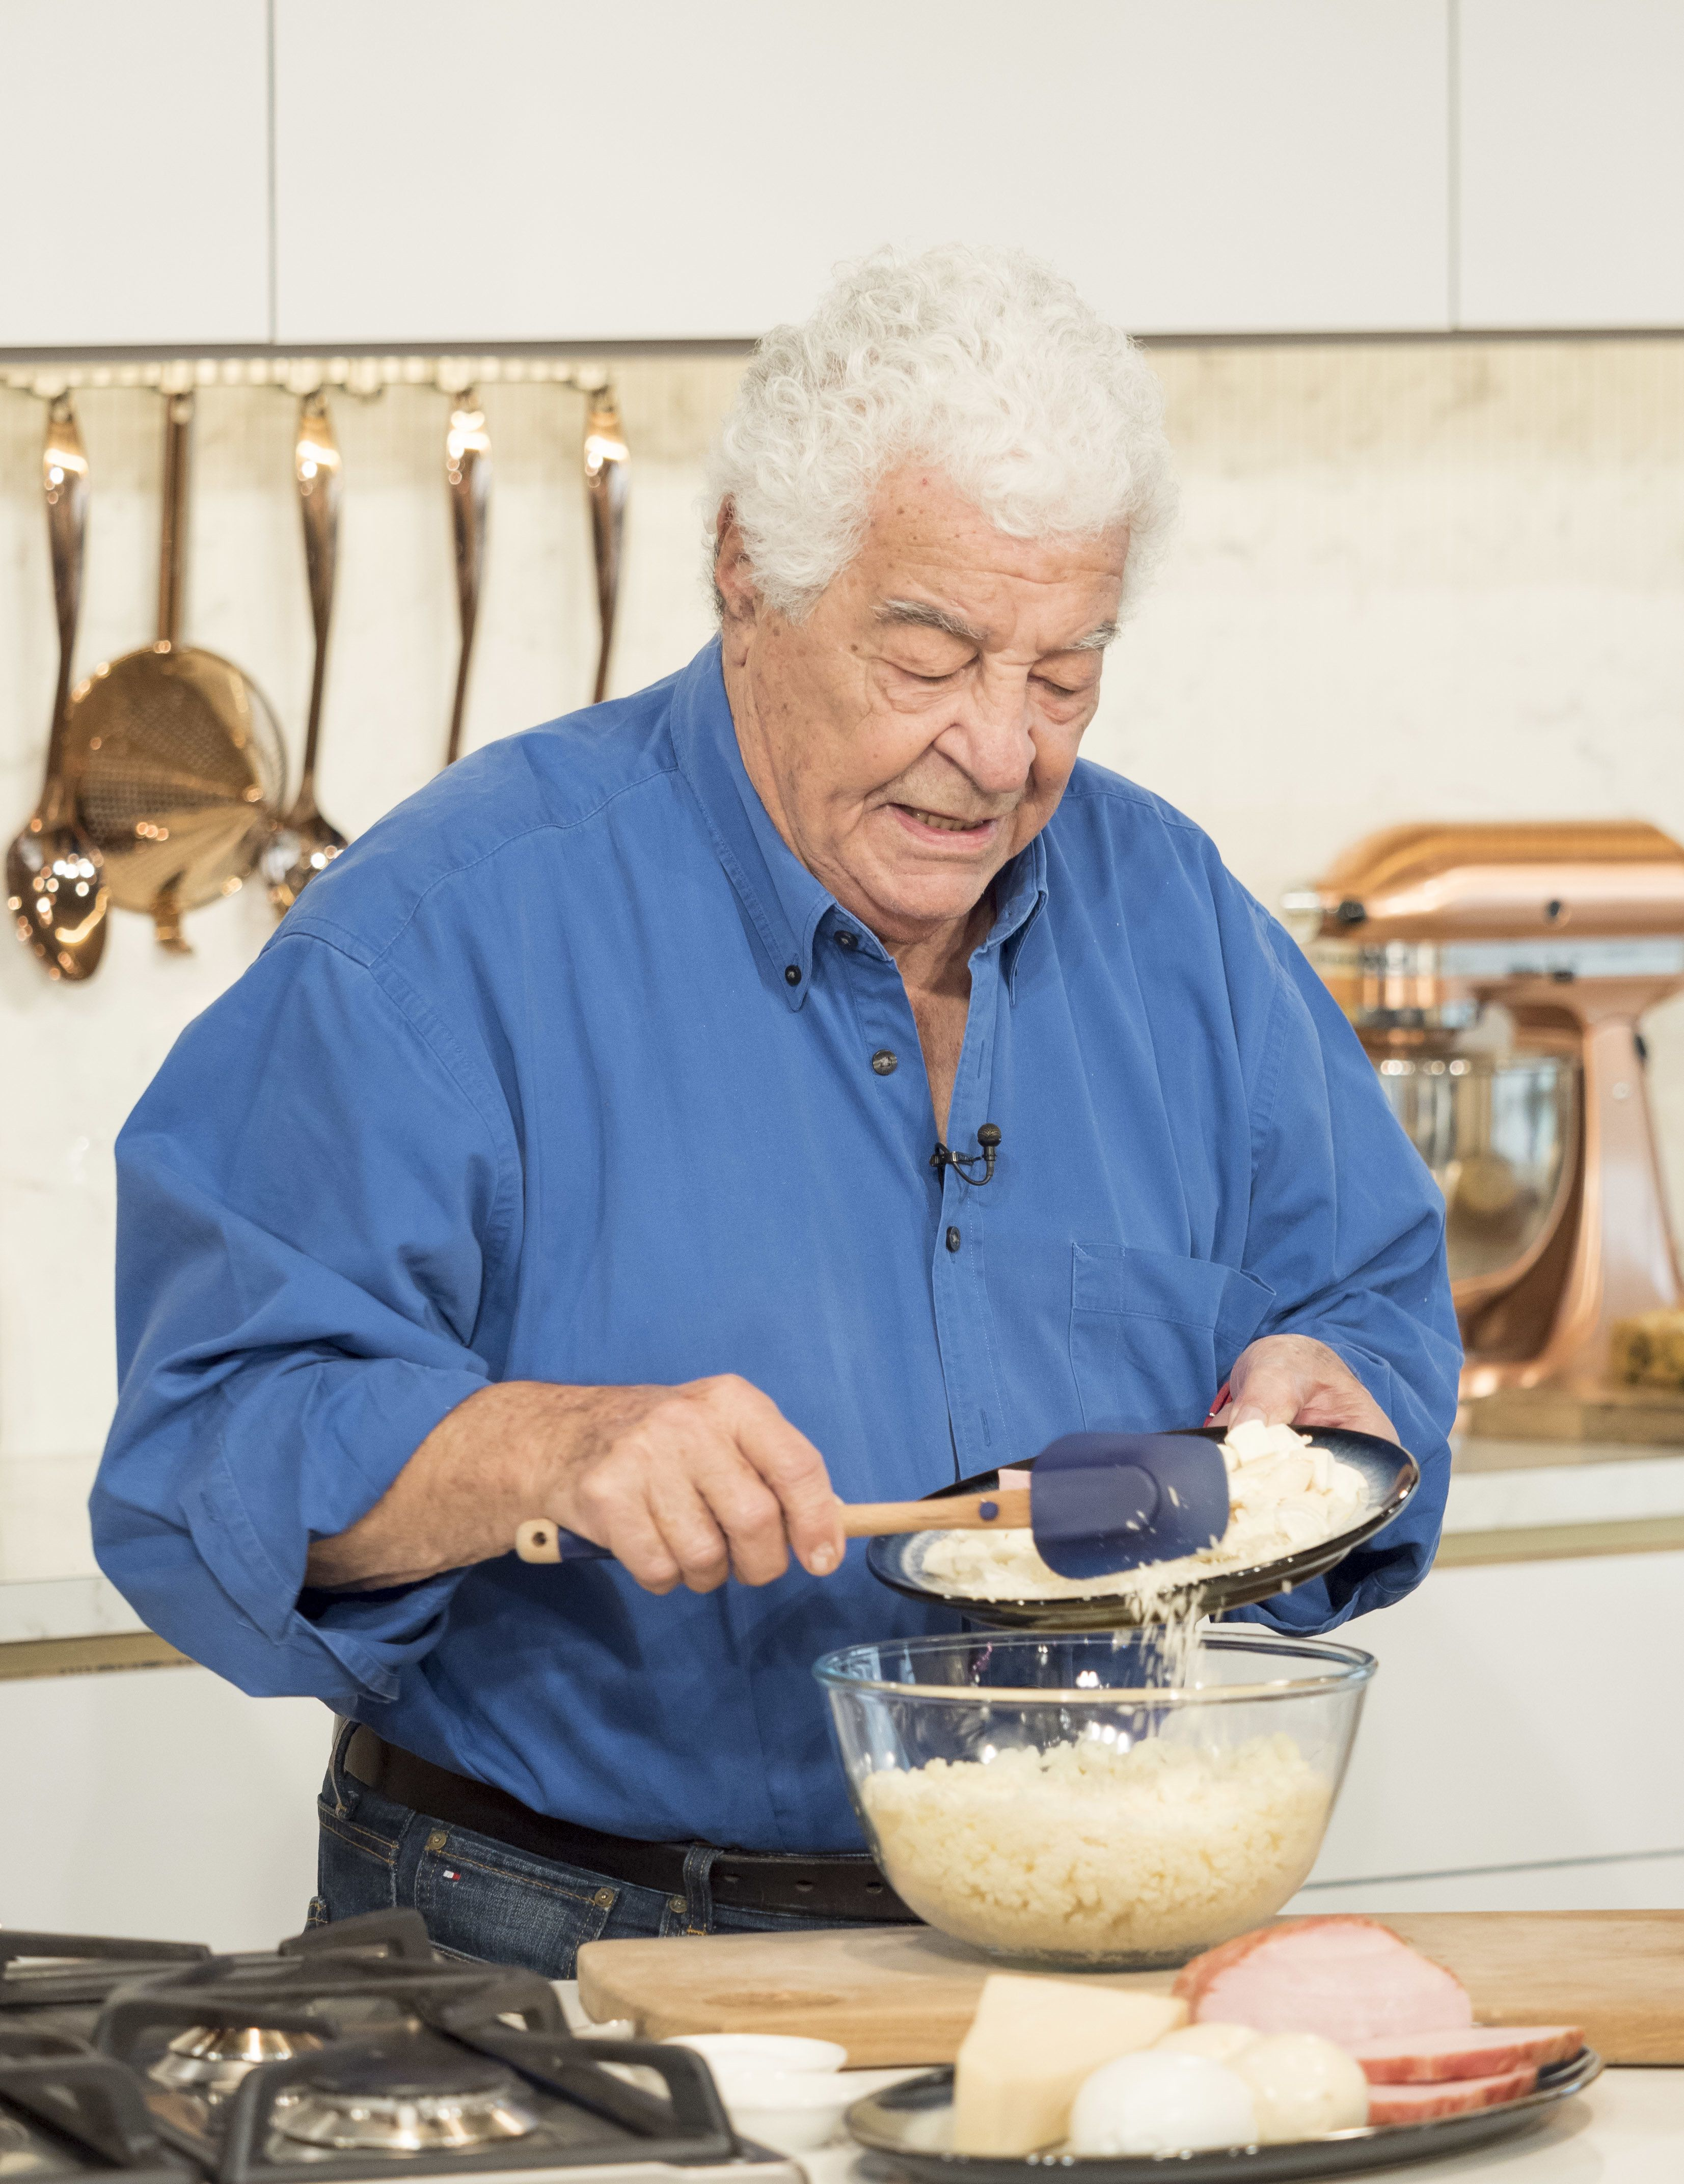 <strong>Antonio Carluccio appearing on This Morning last year&nbsp;</strong>